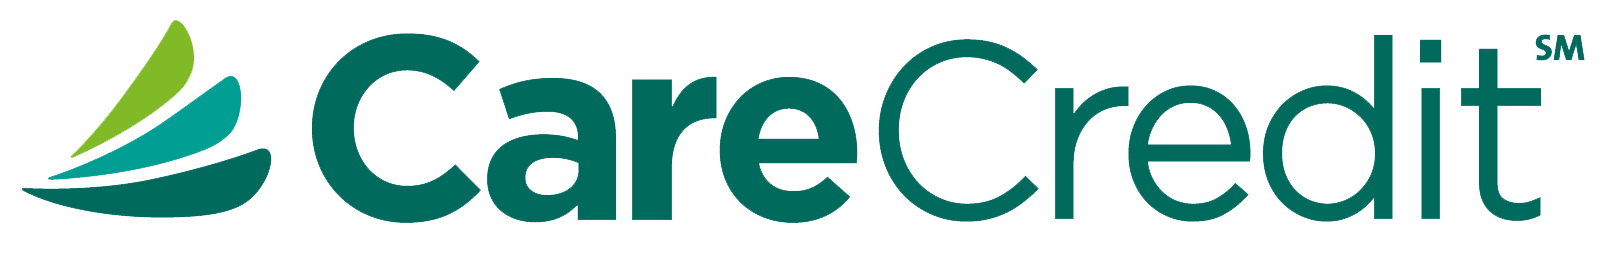 CareCredit__6stroke